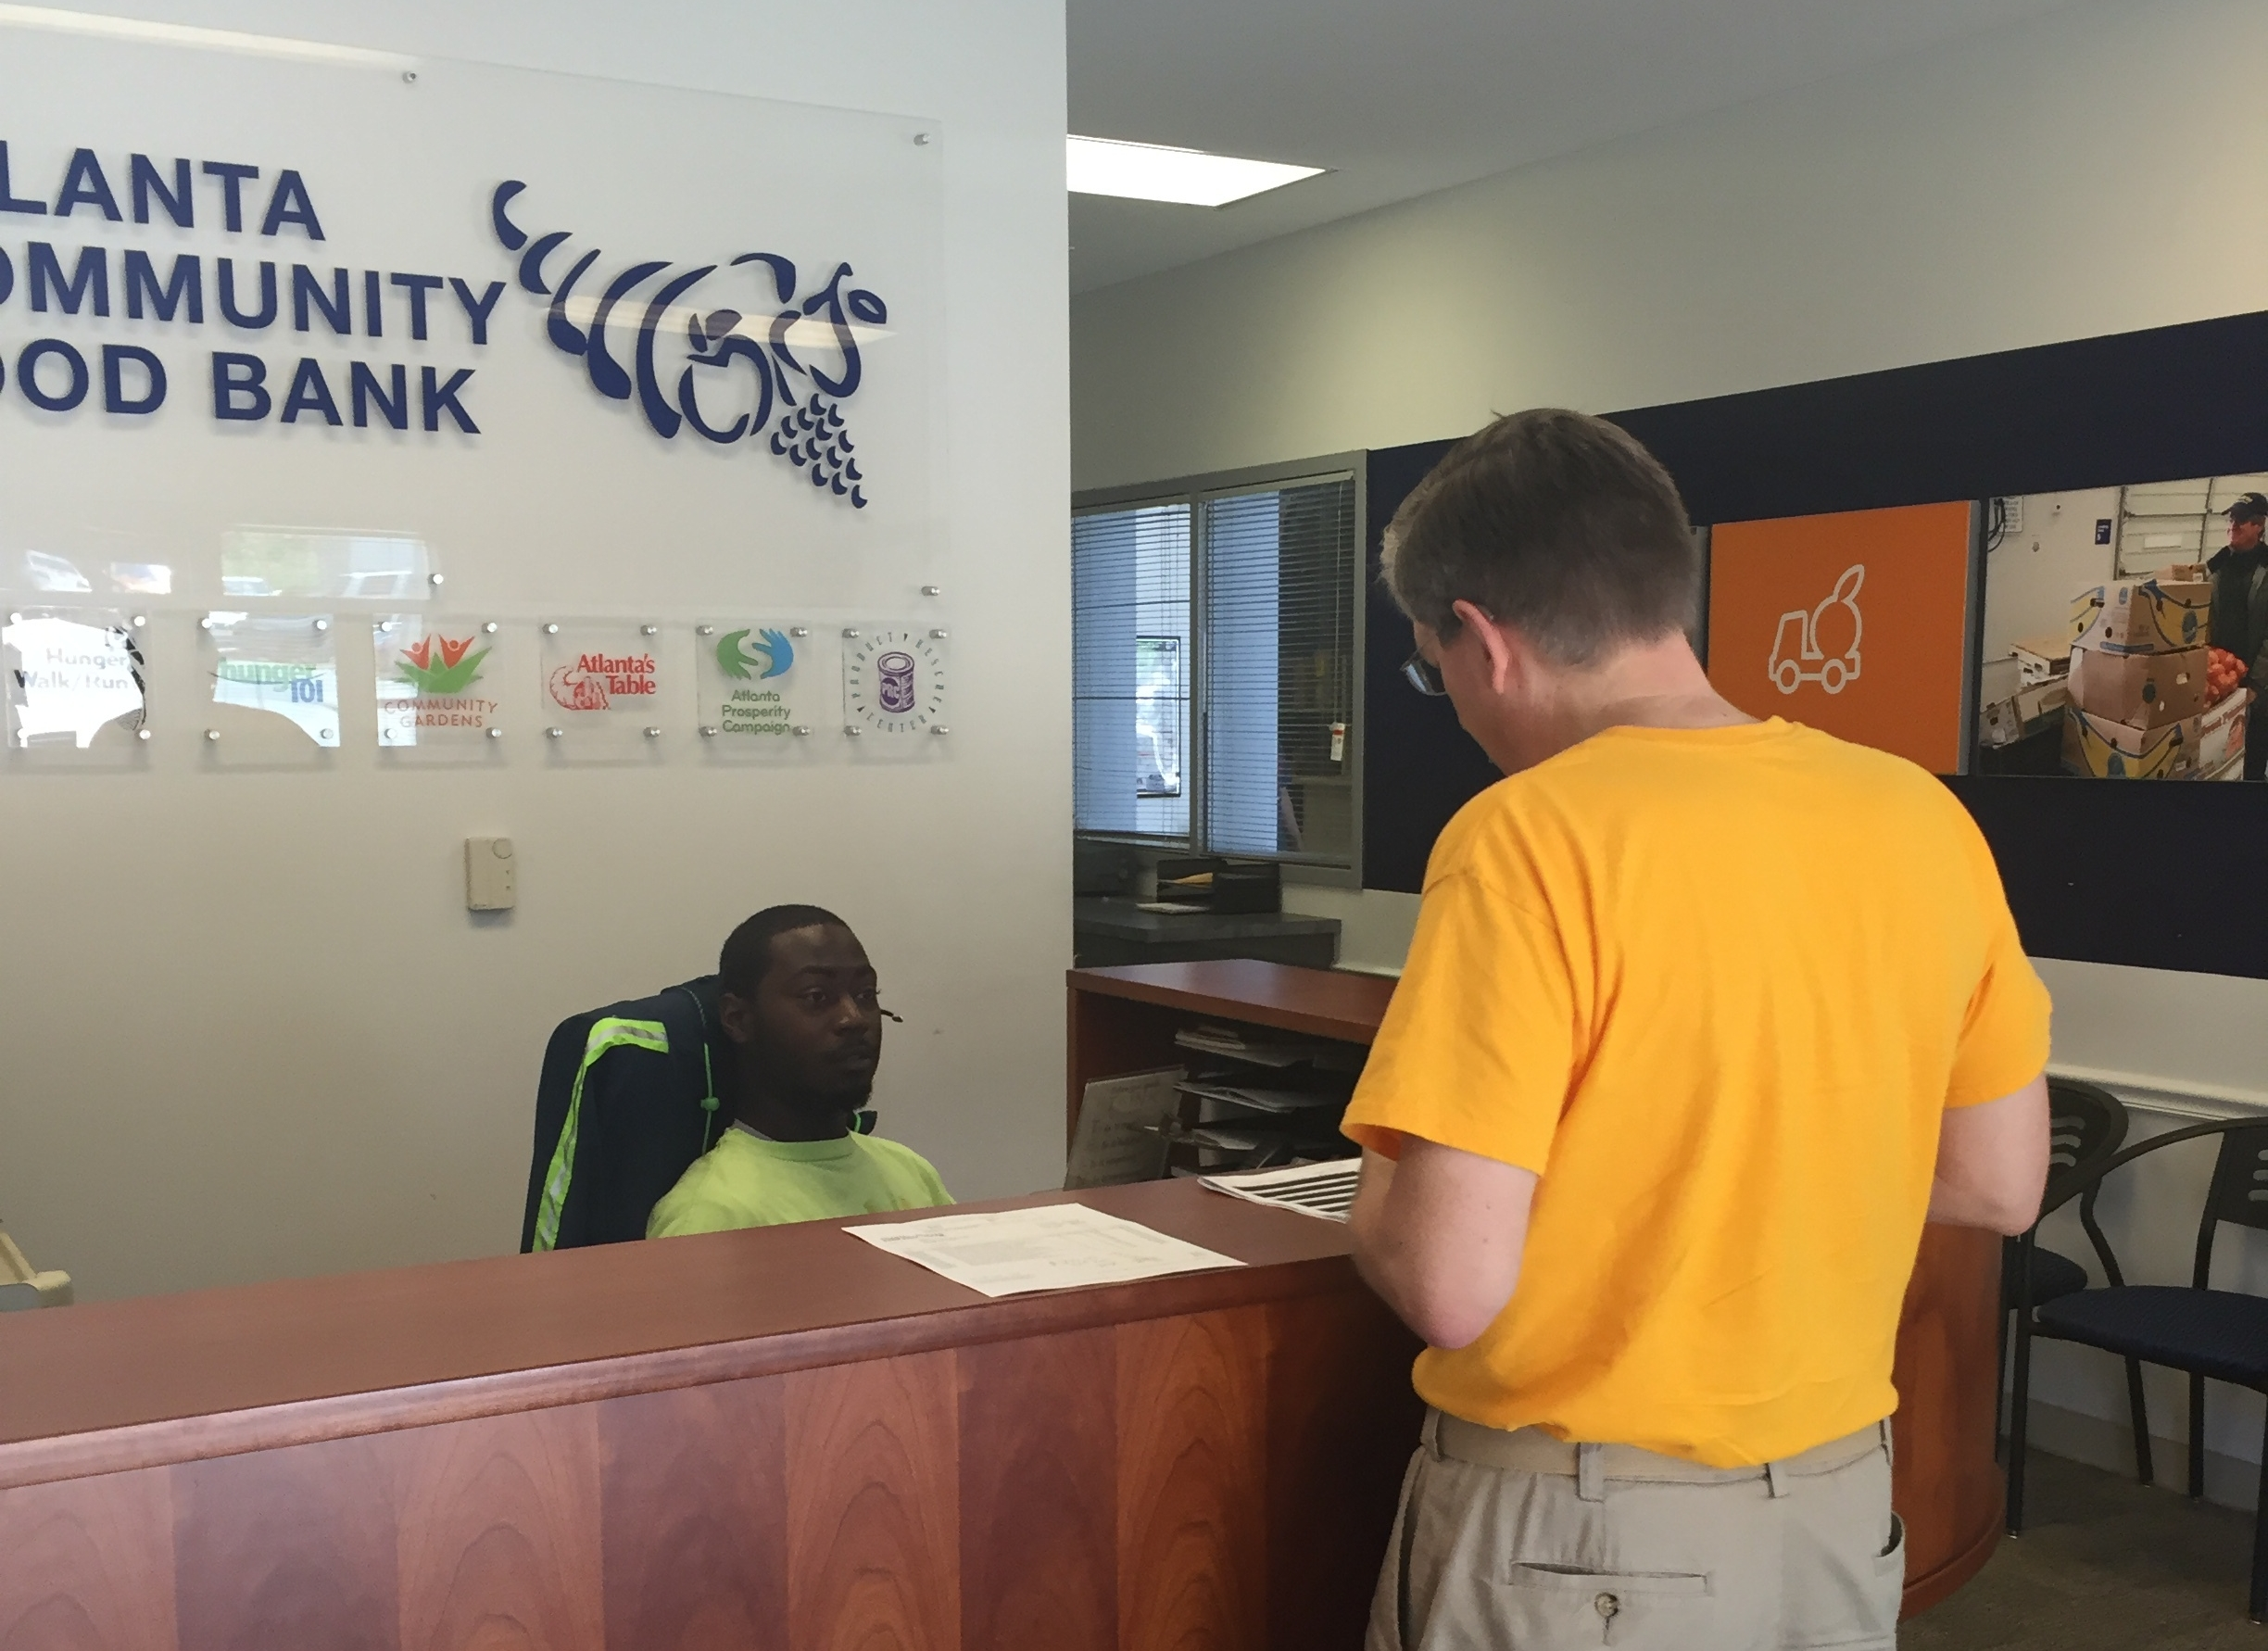 Miles checking in at ACFB.